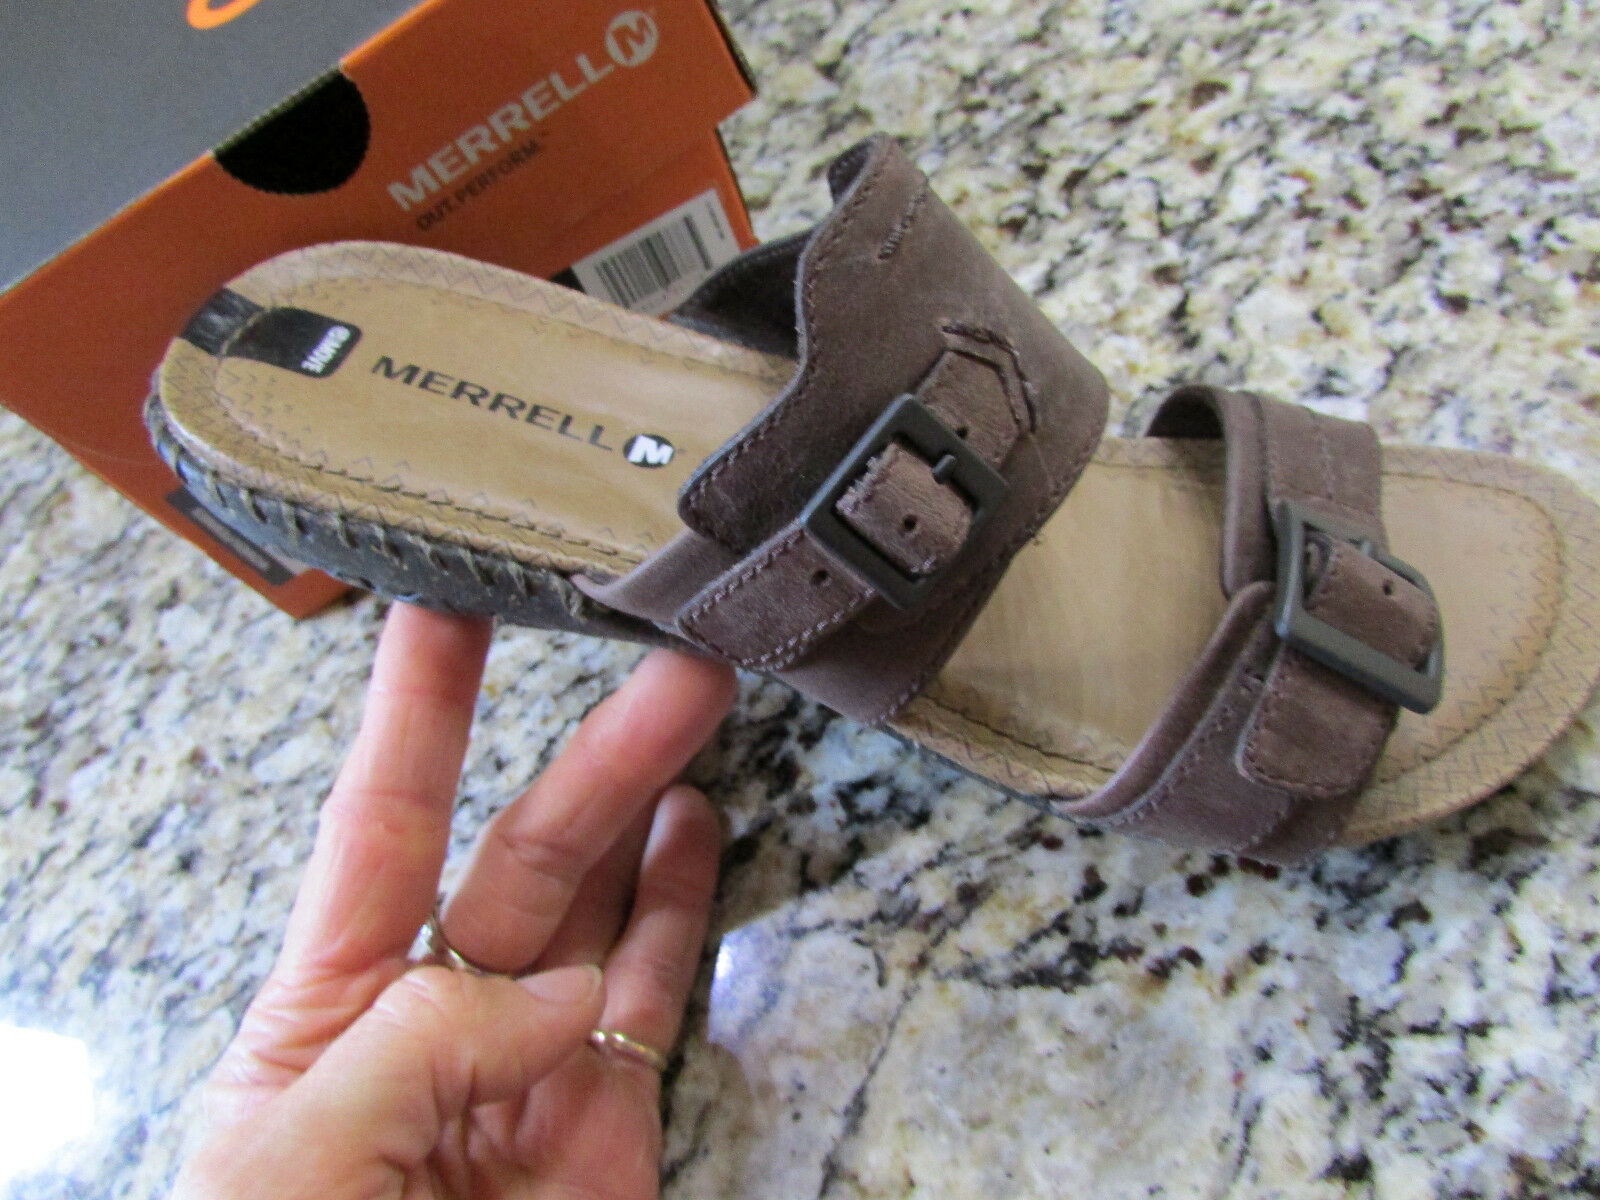 152a1fa0a89 Buy Merrell Size 9 Whisper Slide Brown Leather Slides Sandals Womens ...